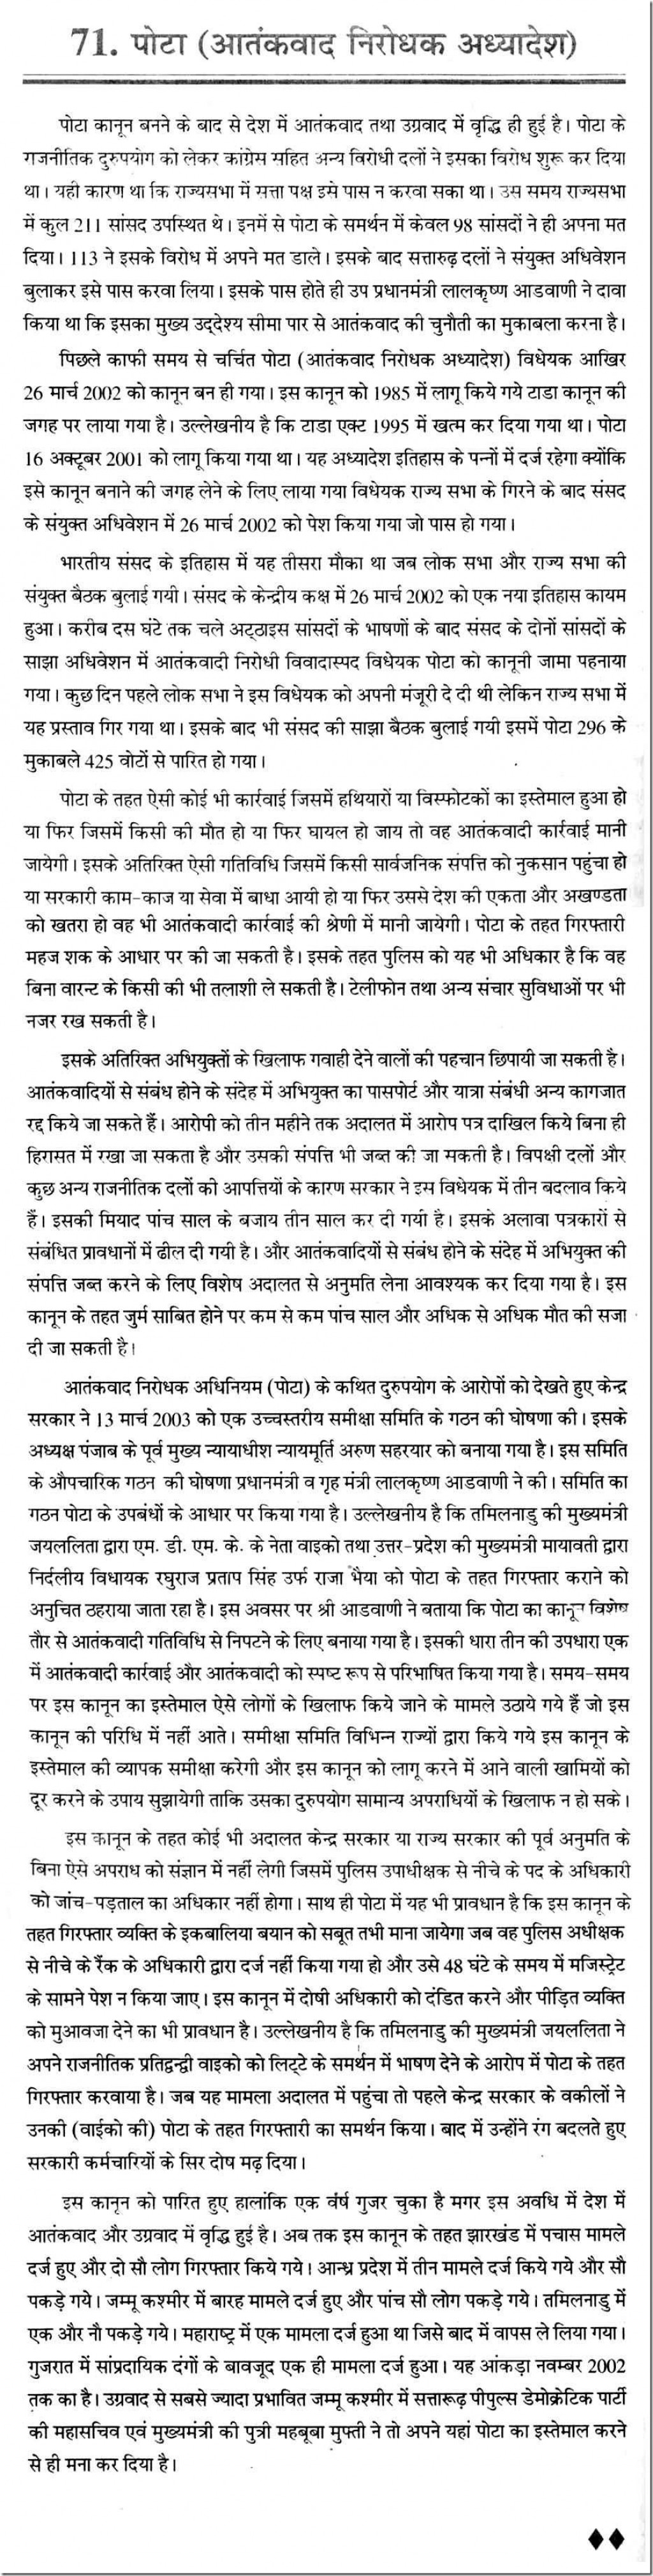 009 10071 Thumb 3 Global Terrorism Essay In Hindi Outstanding Large